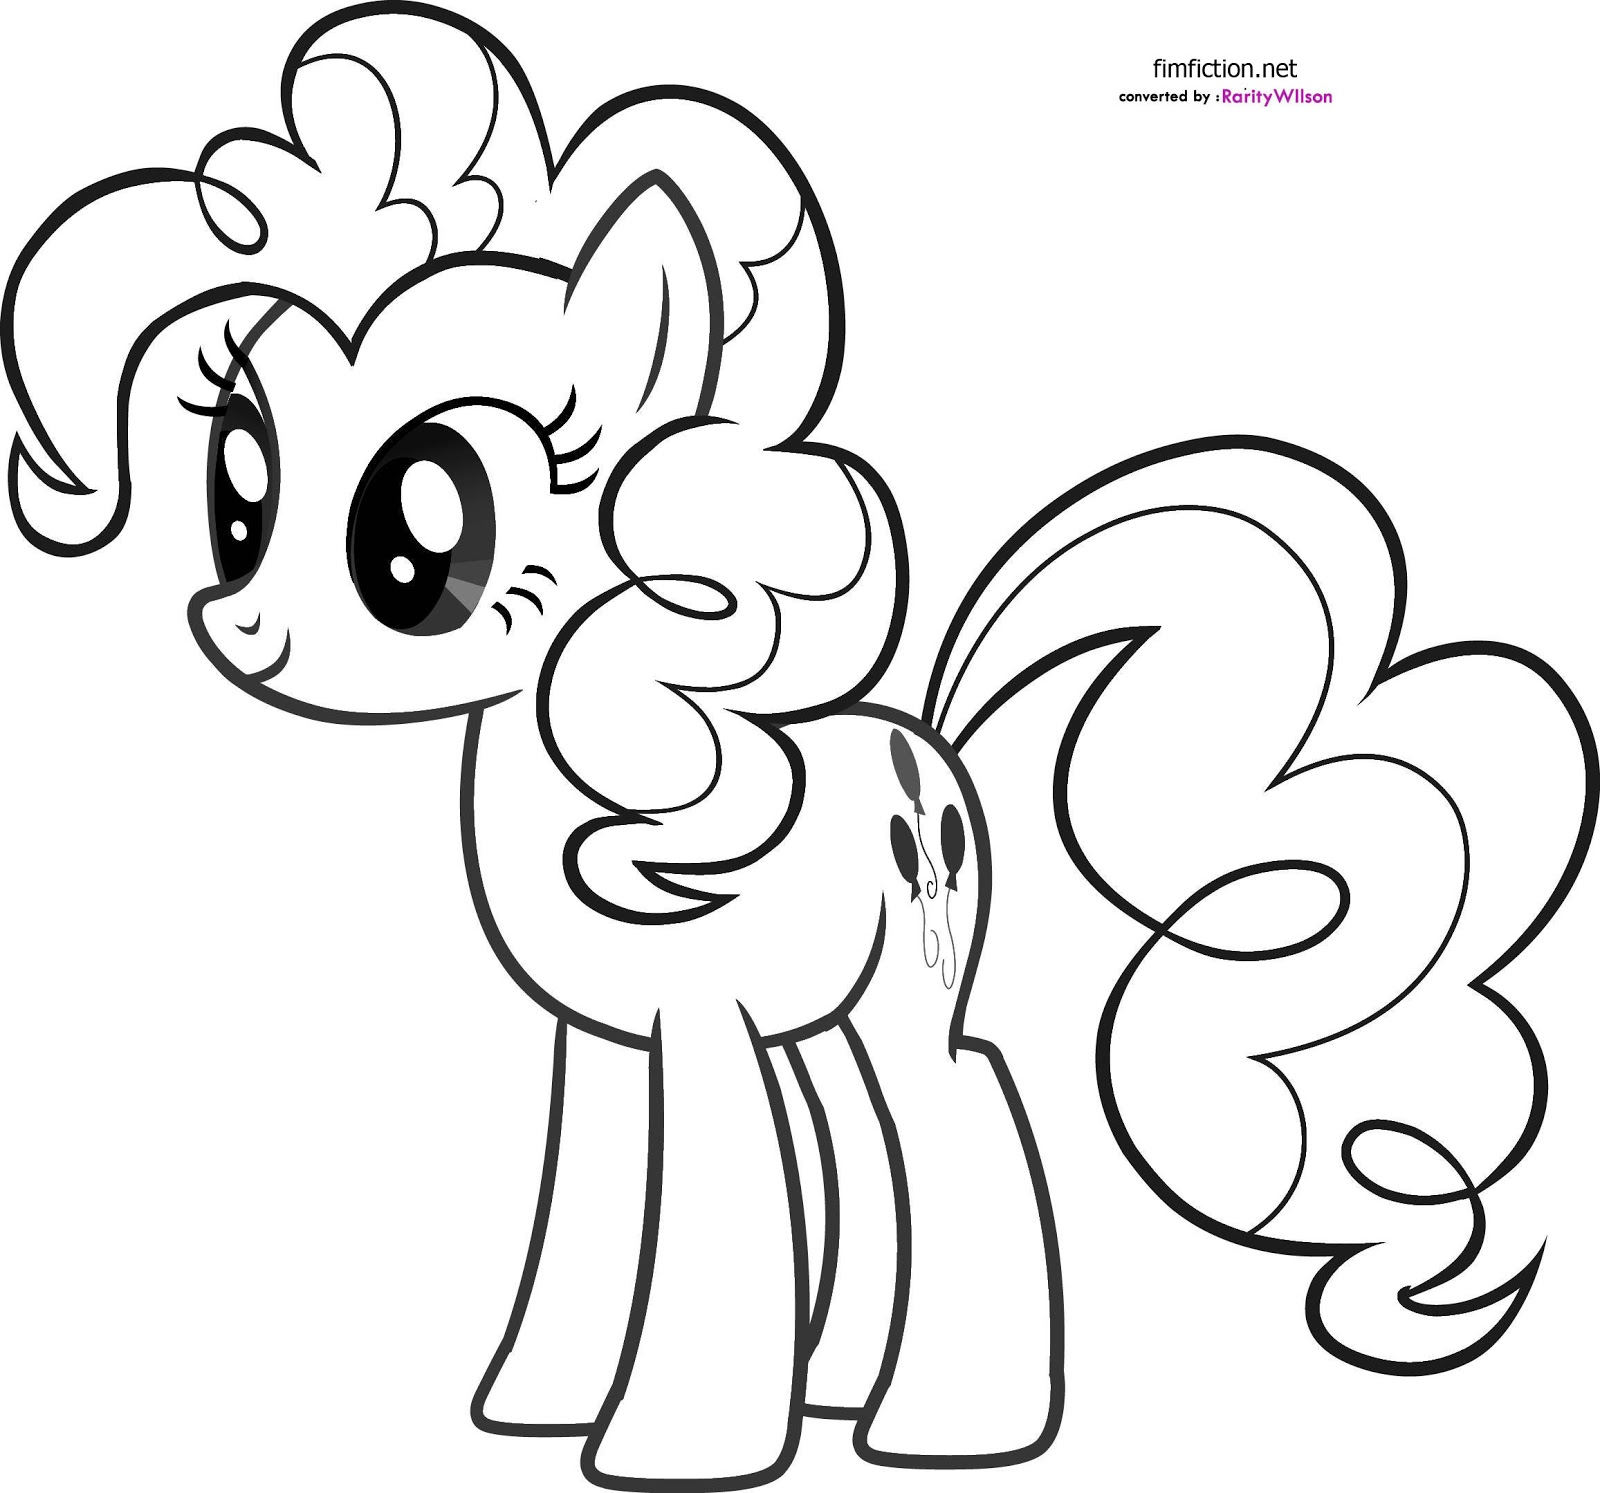 pinkie pie coloring pinkie pie coloring clipart best pinkie coloring pie